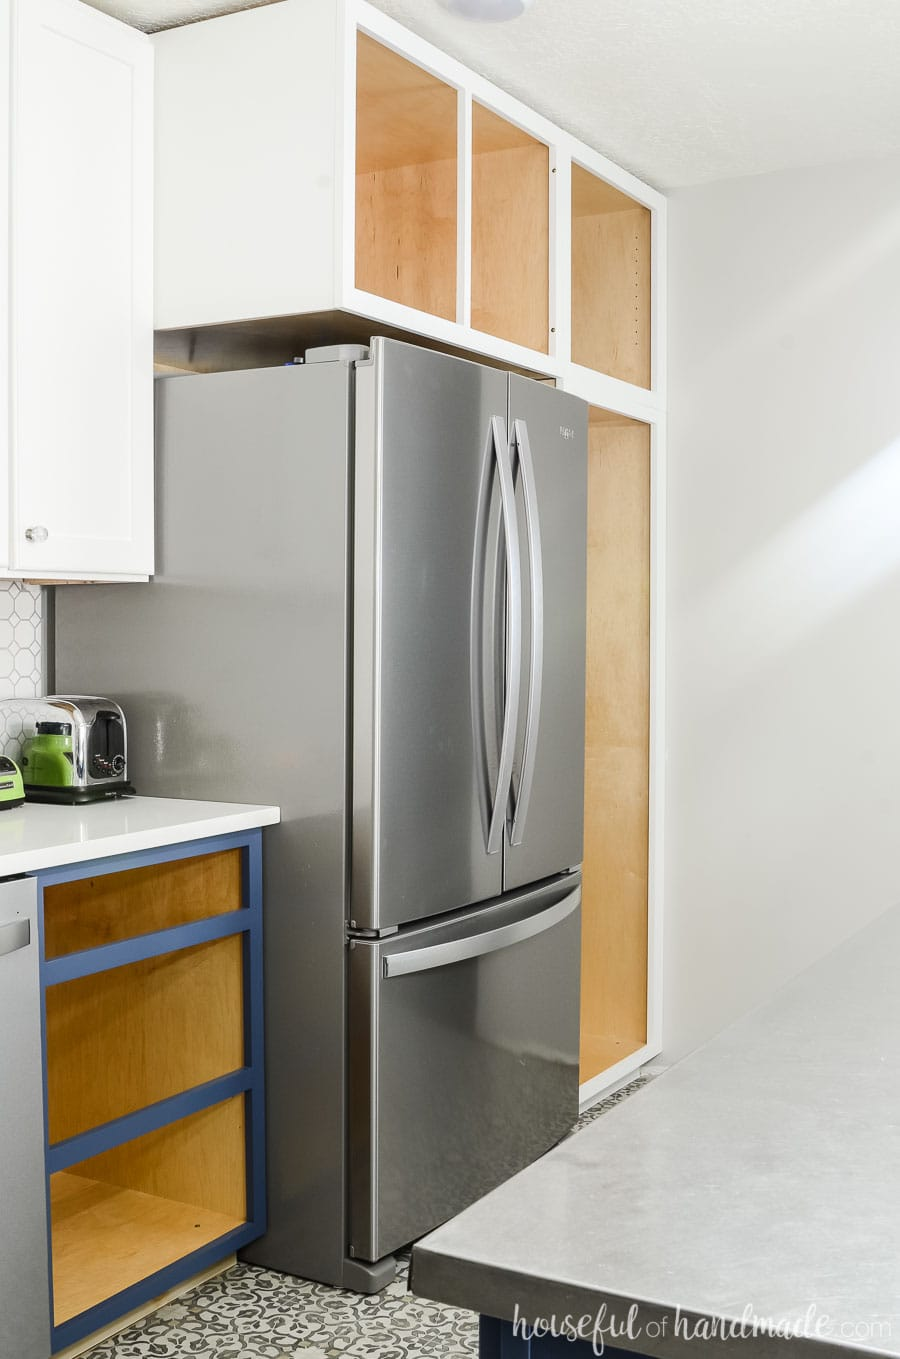 Stainless steel refrigerator surrounded by deep white cabinets for a pantry. Budget farmhouse kitchen reveal at Housefulofhandmade.com